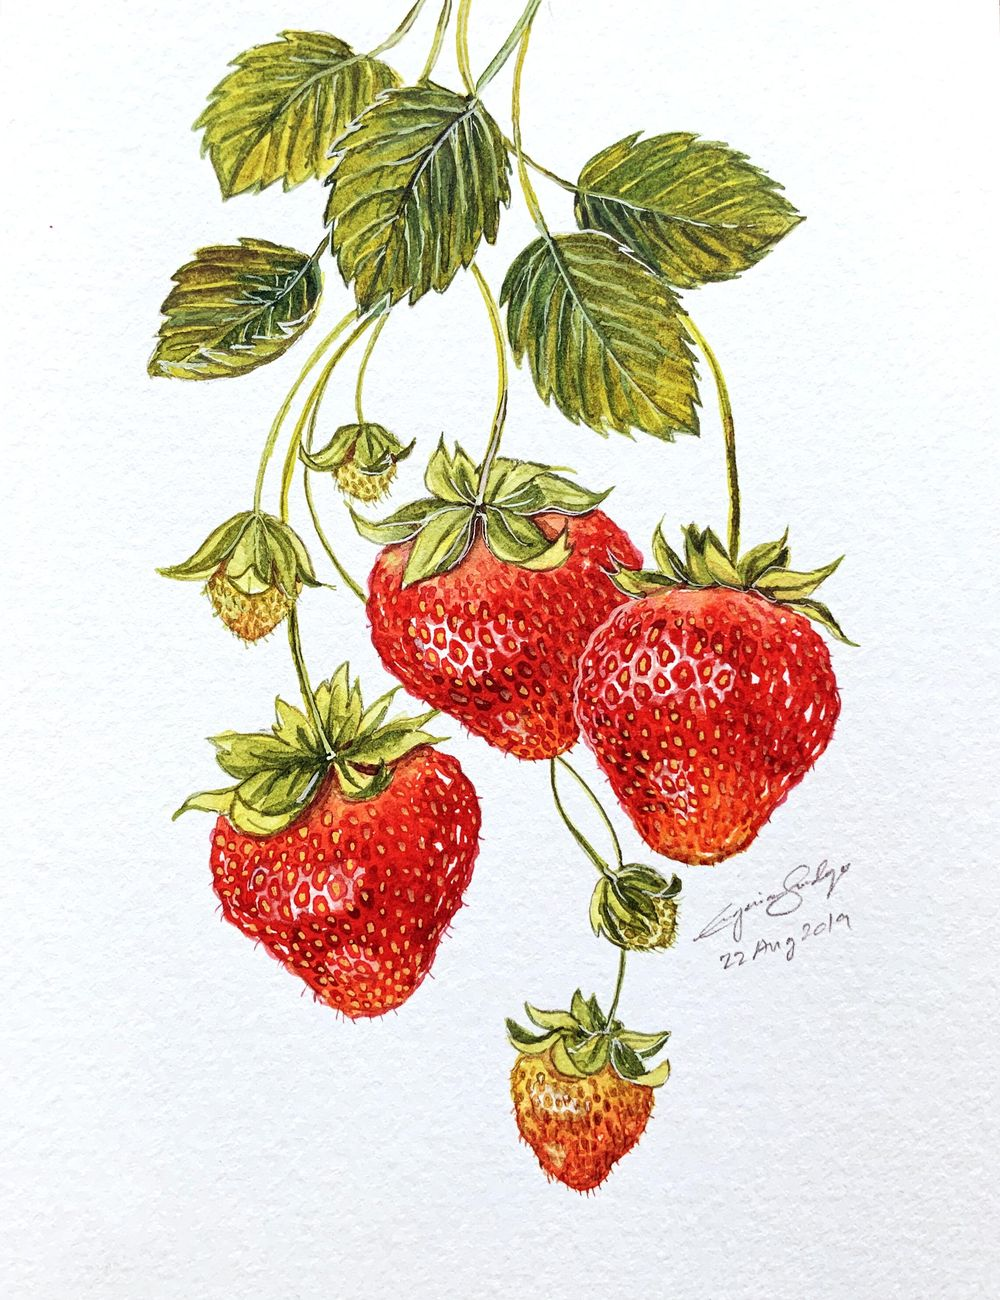 Learn to Paint Realistic Strawberries Without Reference - image 2 - student project